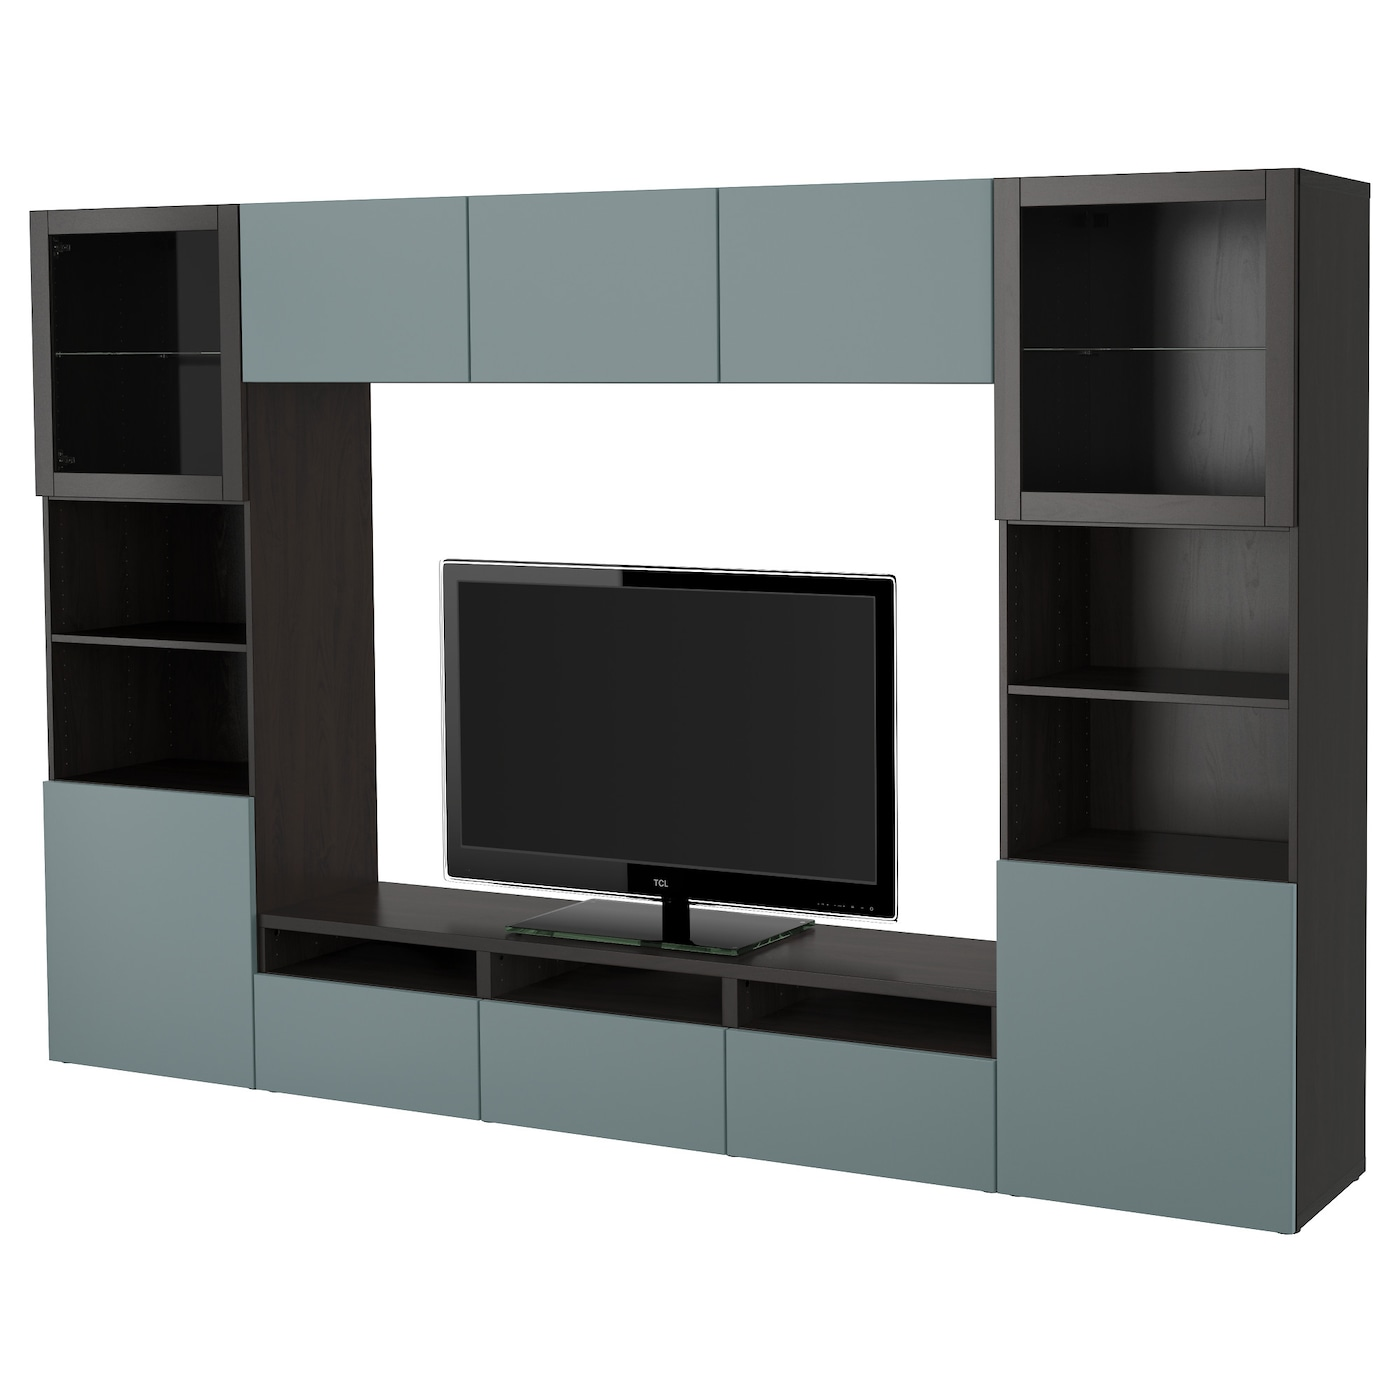 Grand meuble tv ikea - Meuble tv gris ikea ...